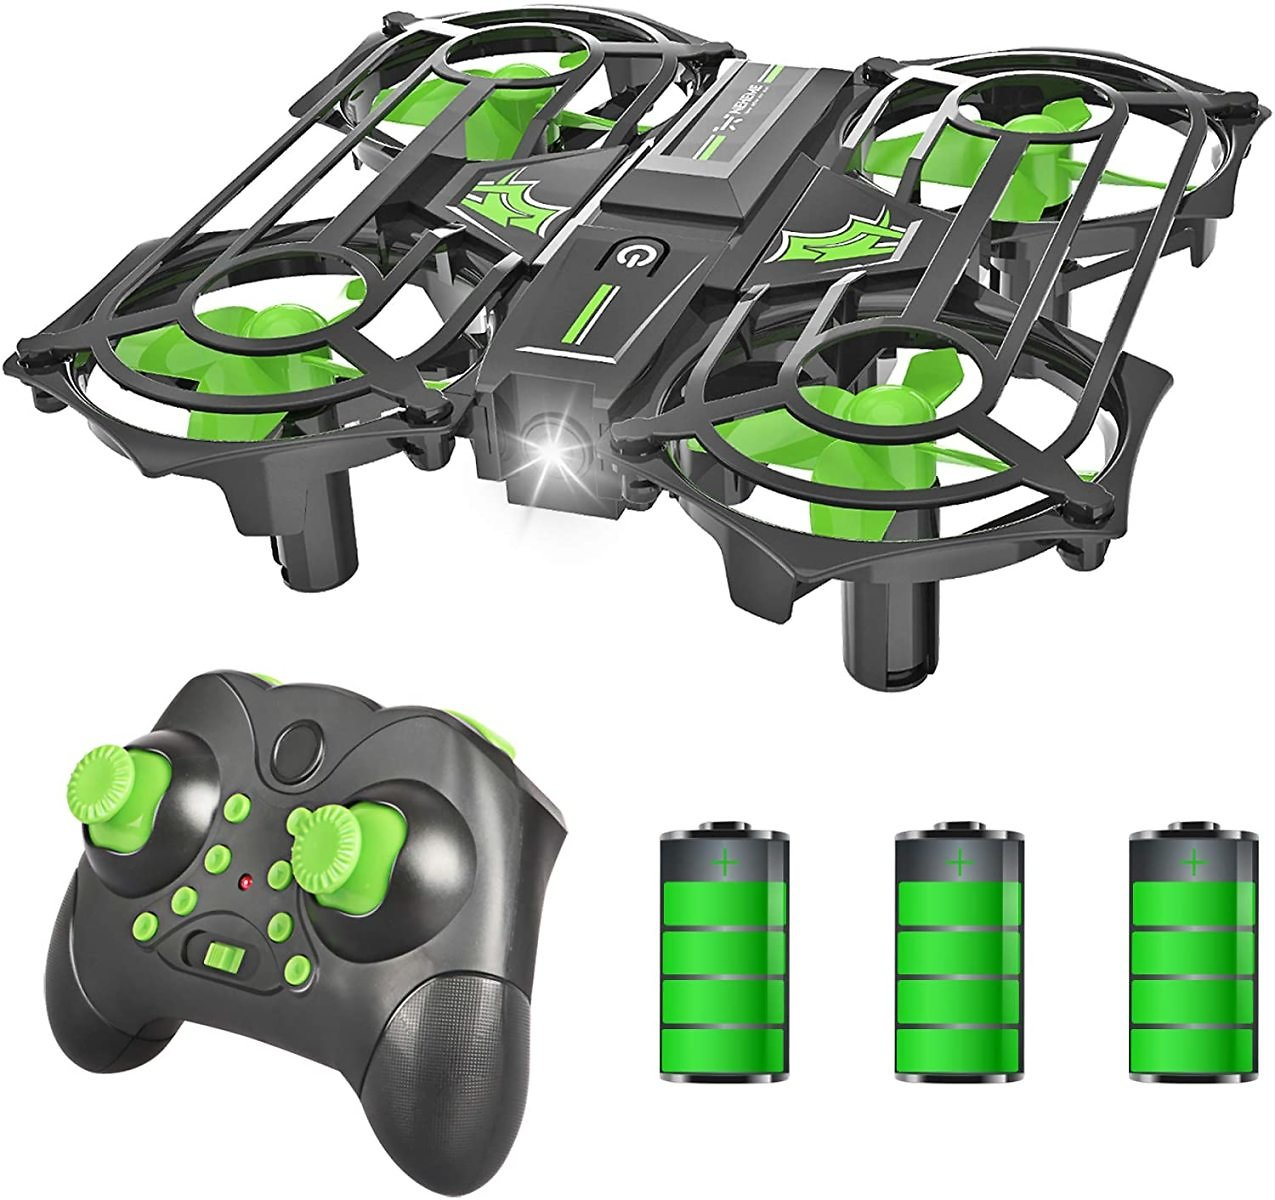 Mini Quadcopter Drones for Kids with Auto Hovering and 3 Batteries